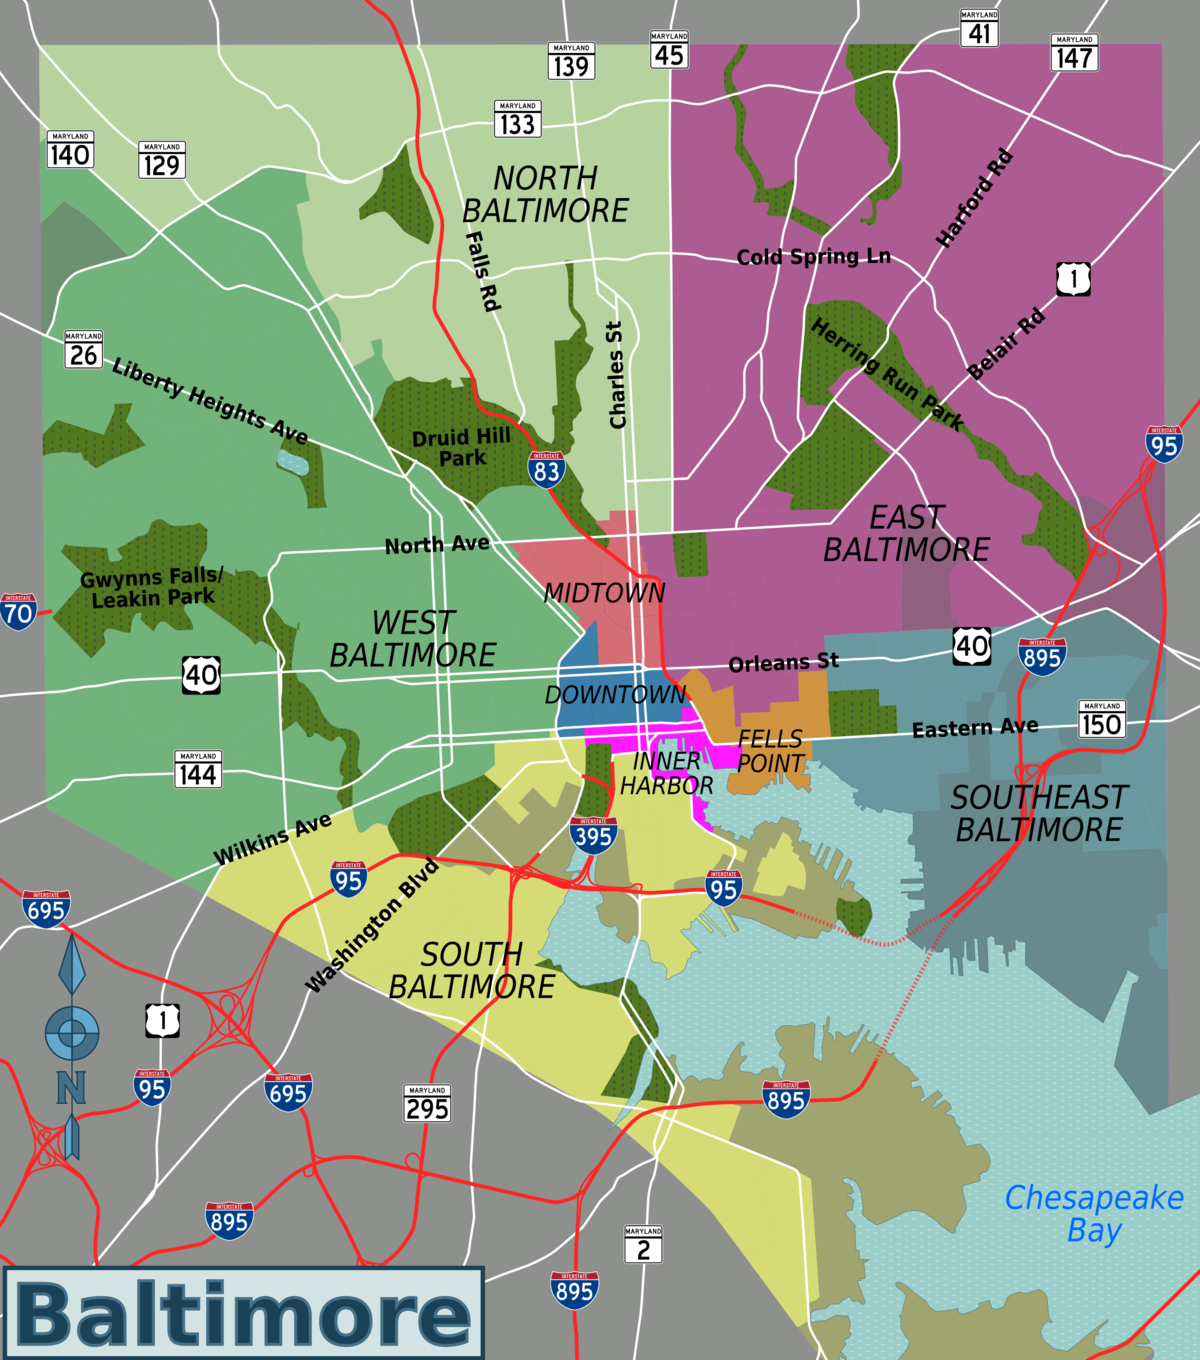 Progress On The DC Baltimore Map The Greater Marin New Tip For - Washington dc baltimore map